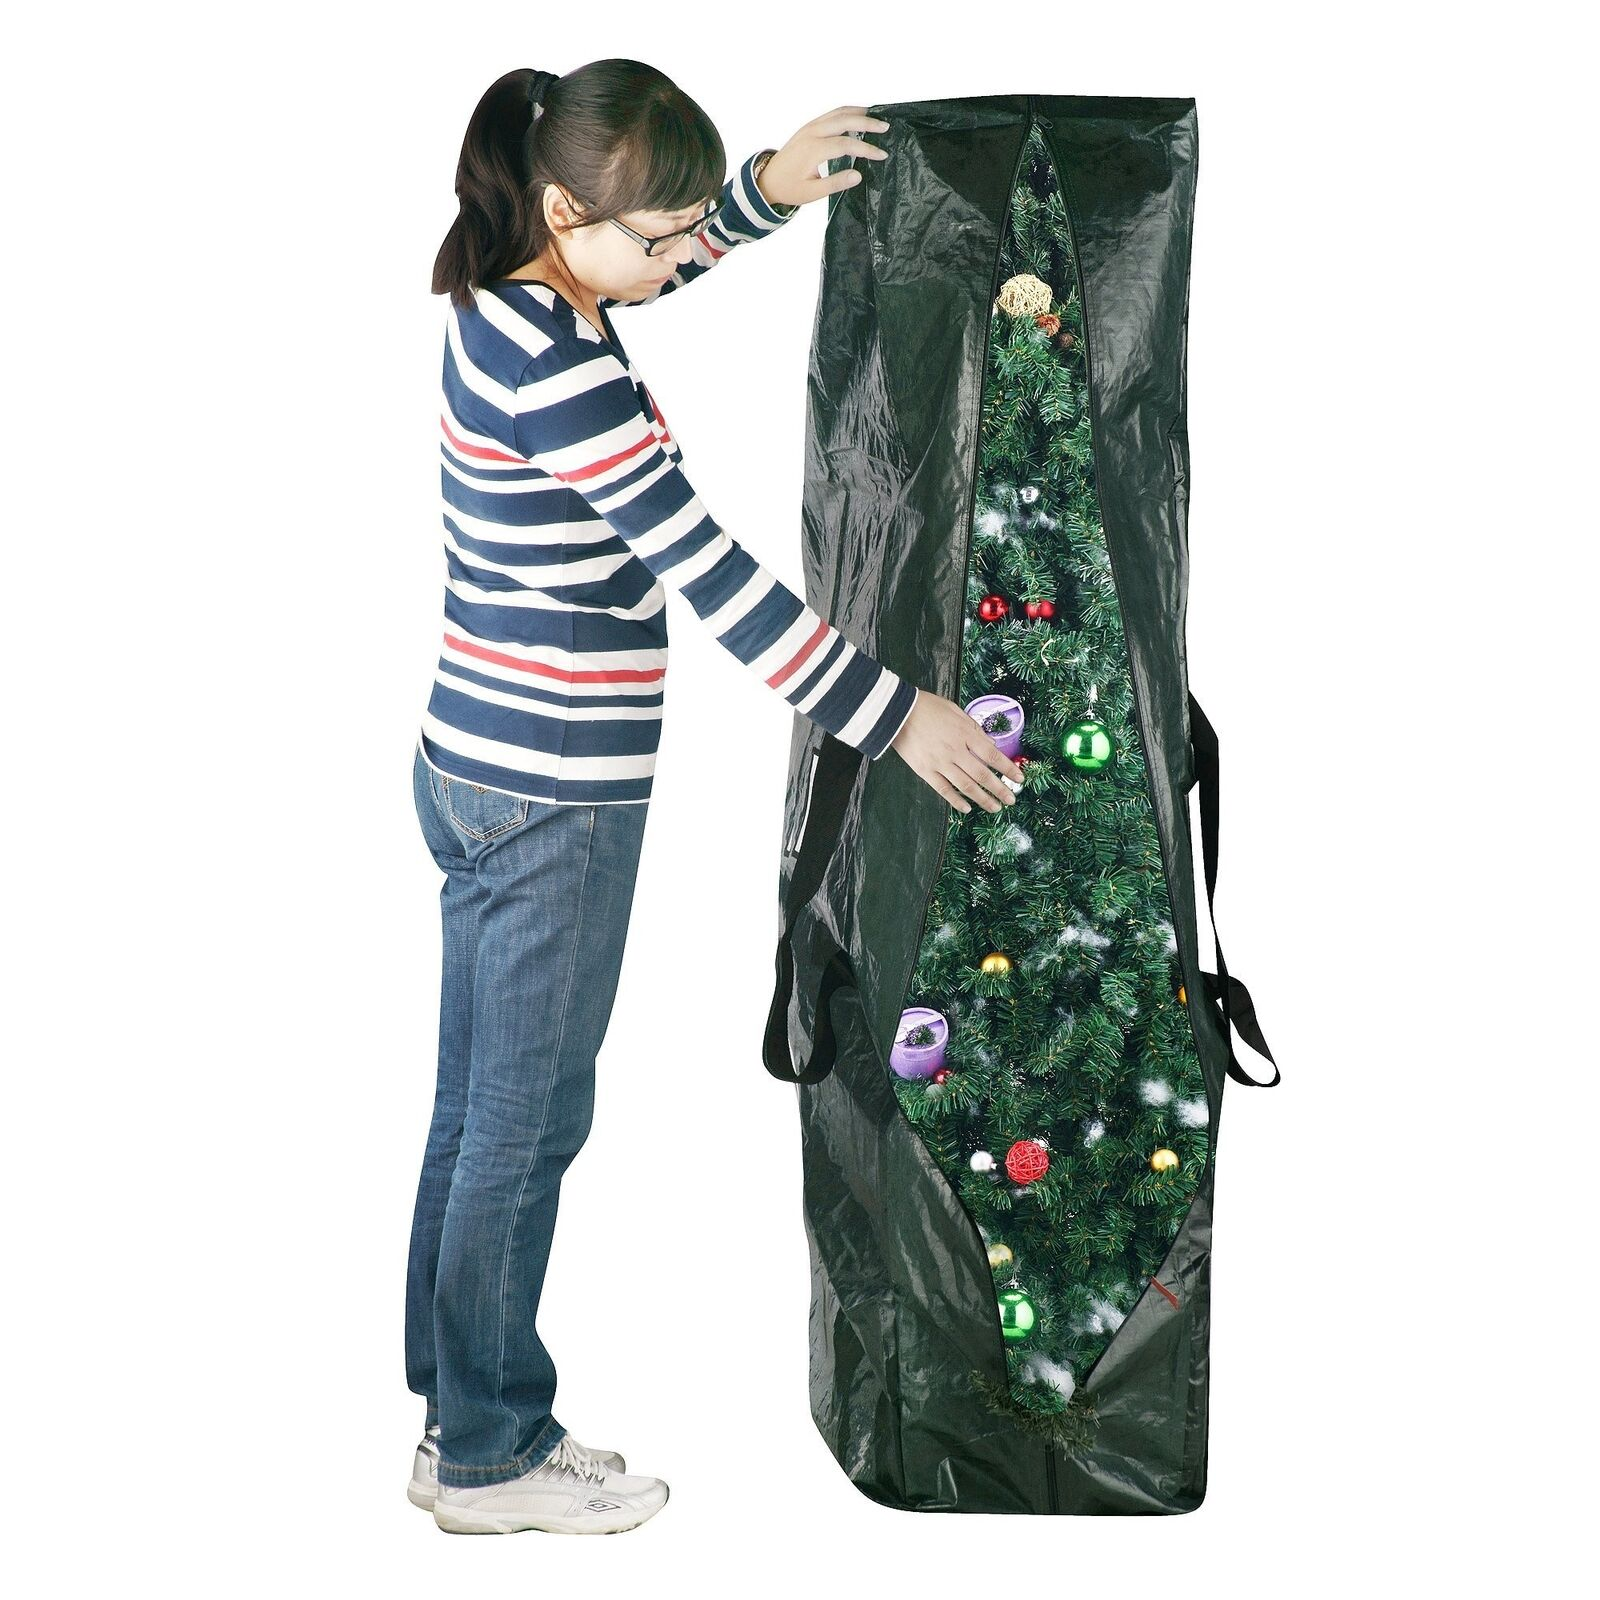 Elf Stor Premium Green Christmas Tree Bag Holiday Extra for up